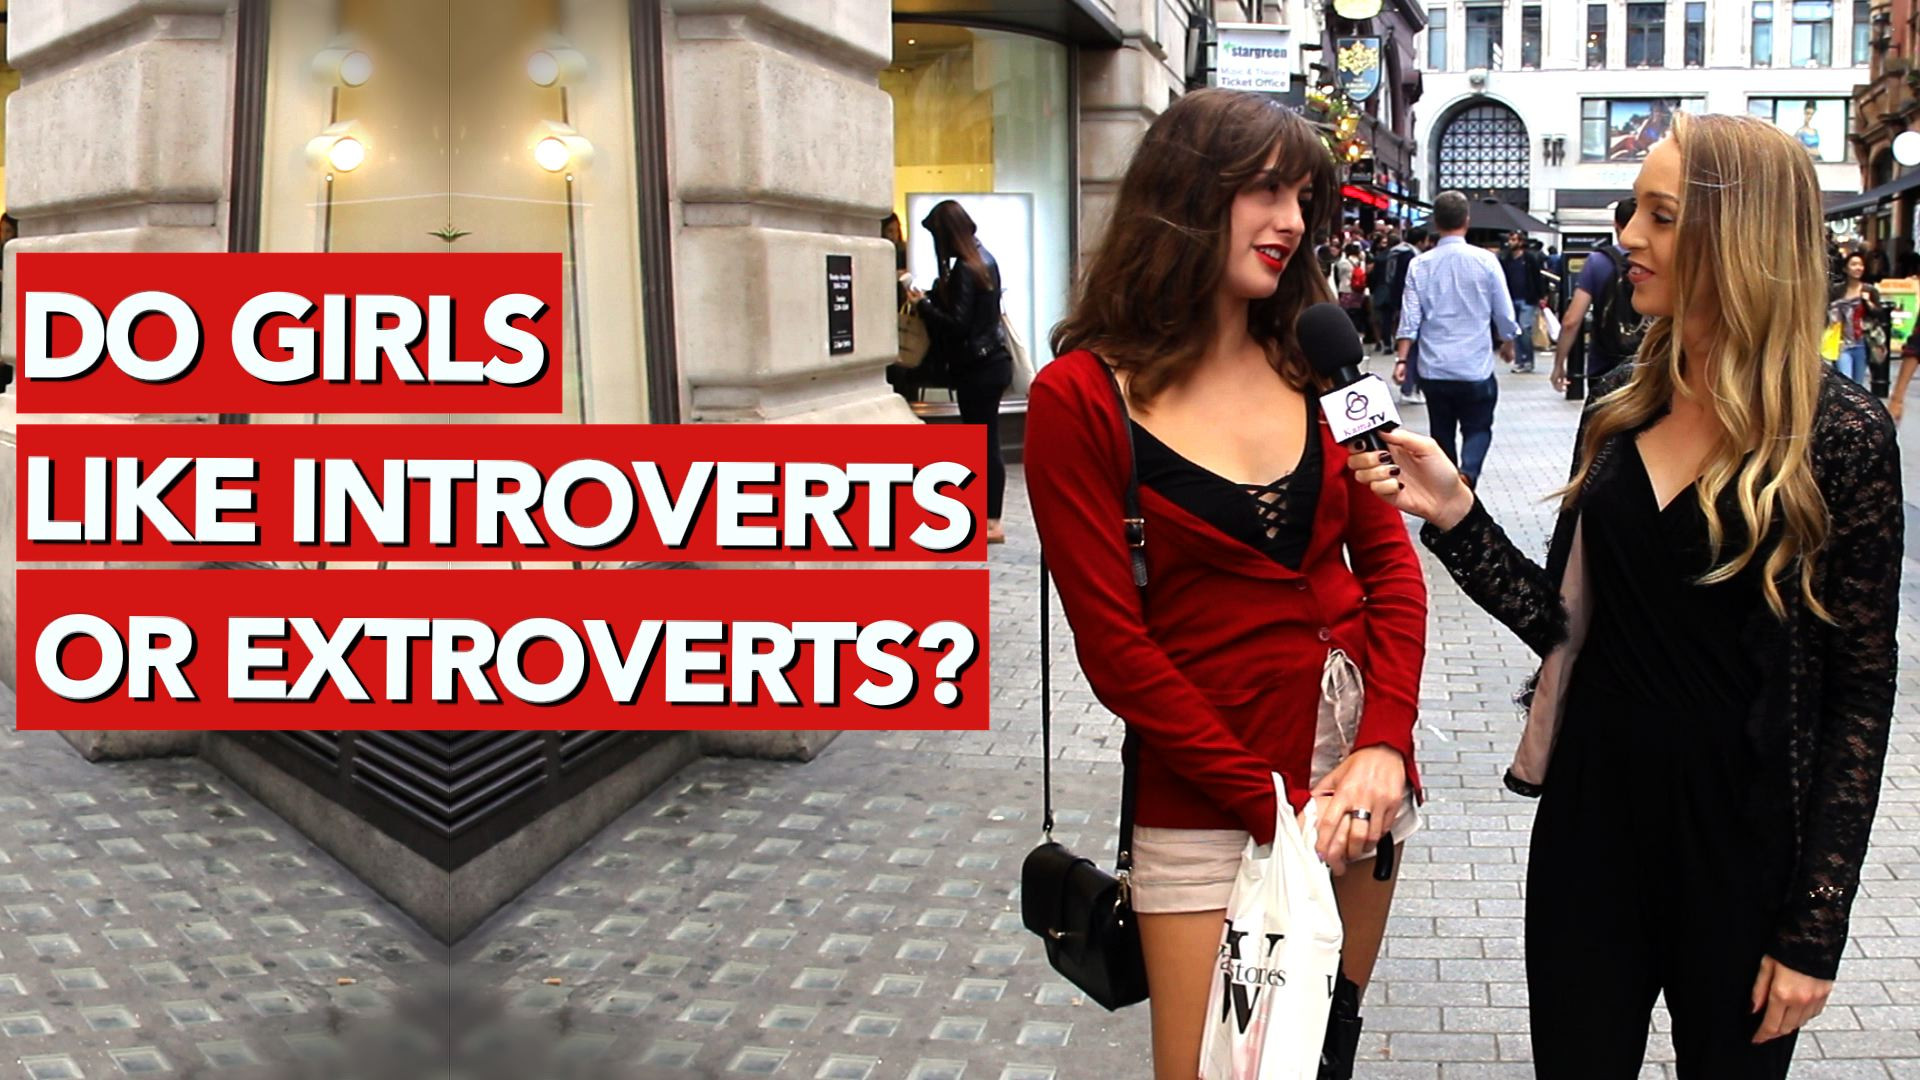 Do girls like introverts or extroverts